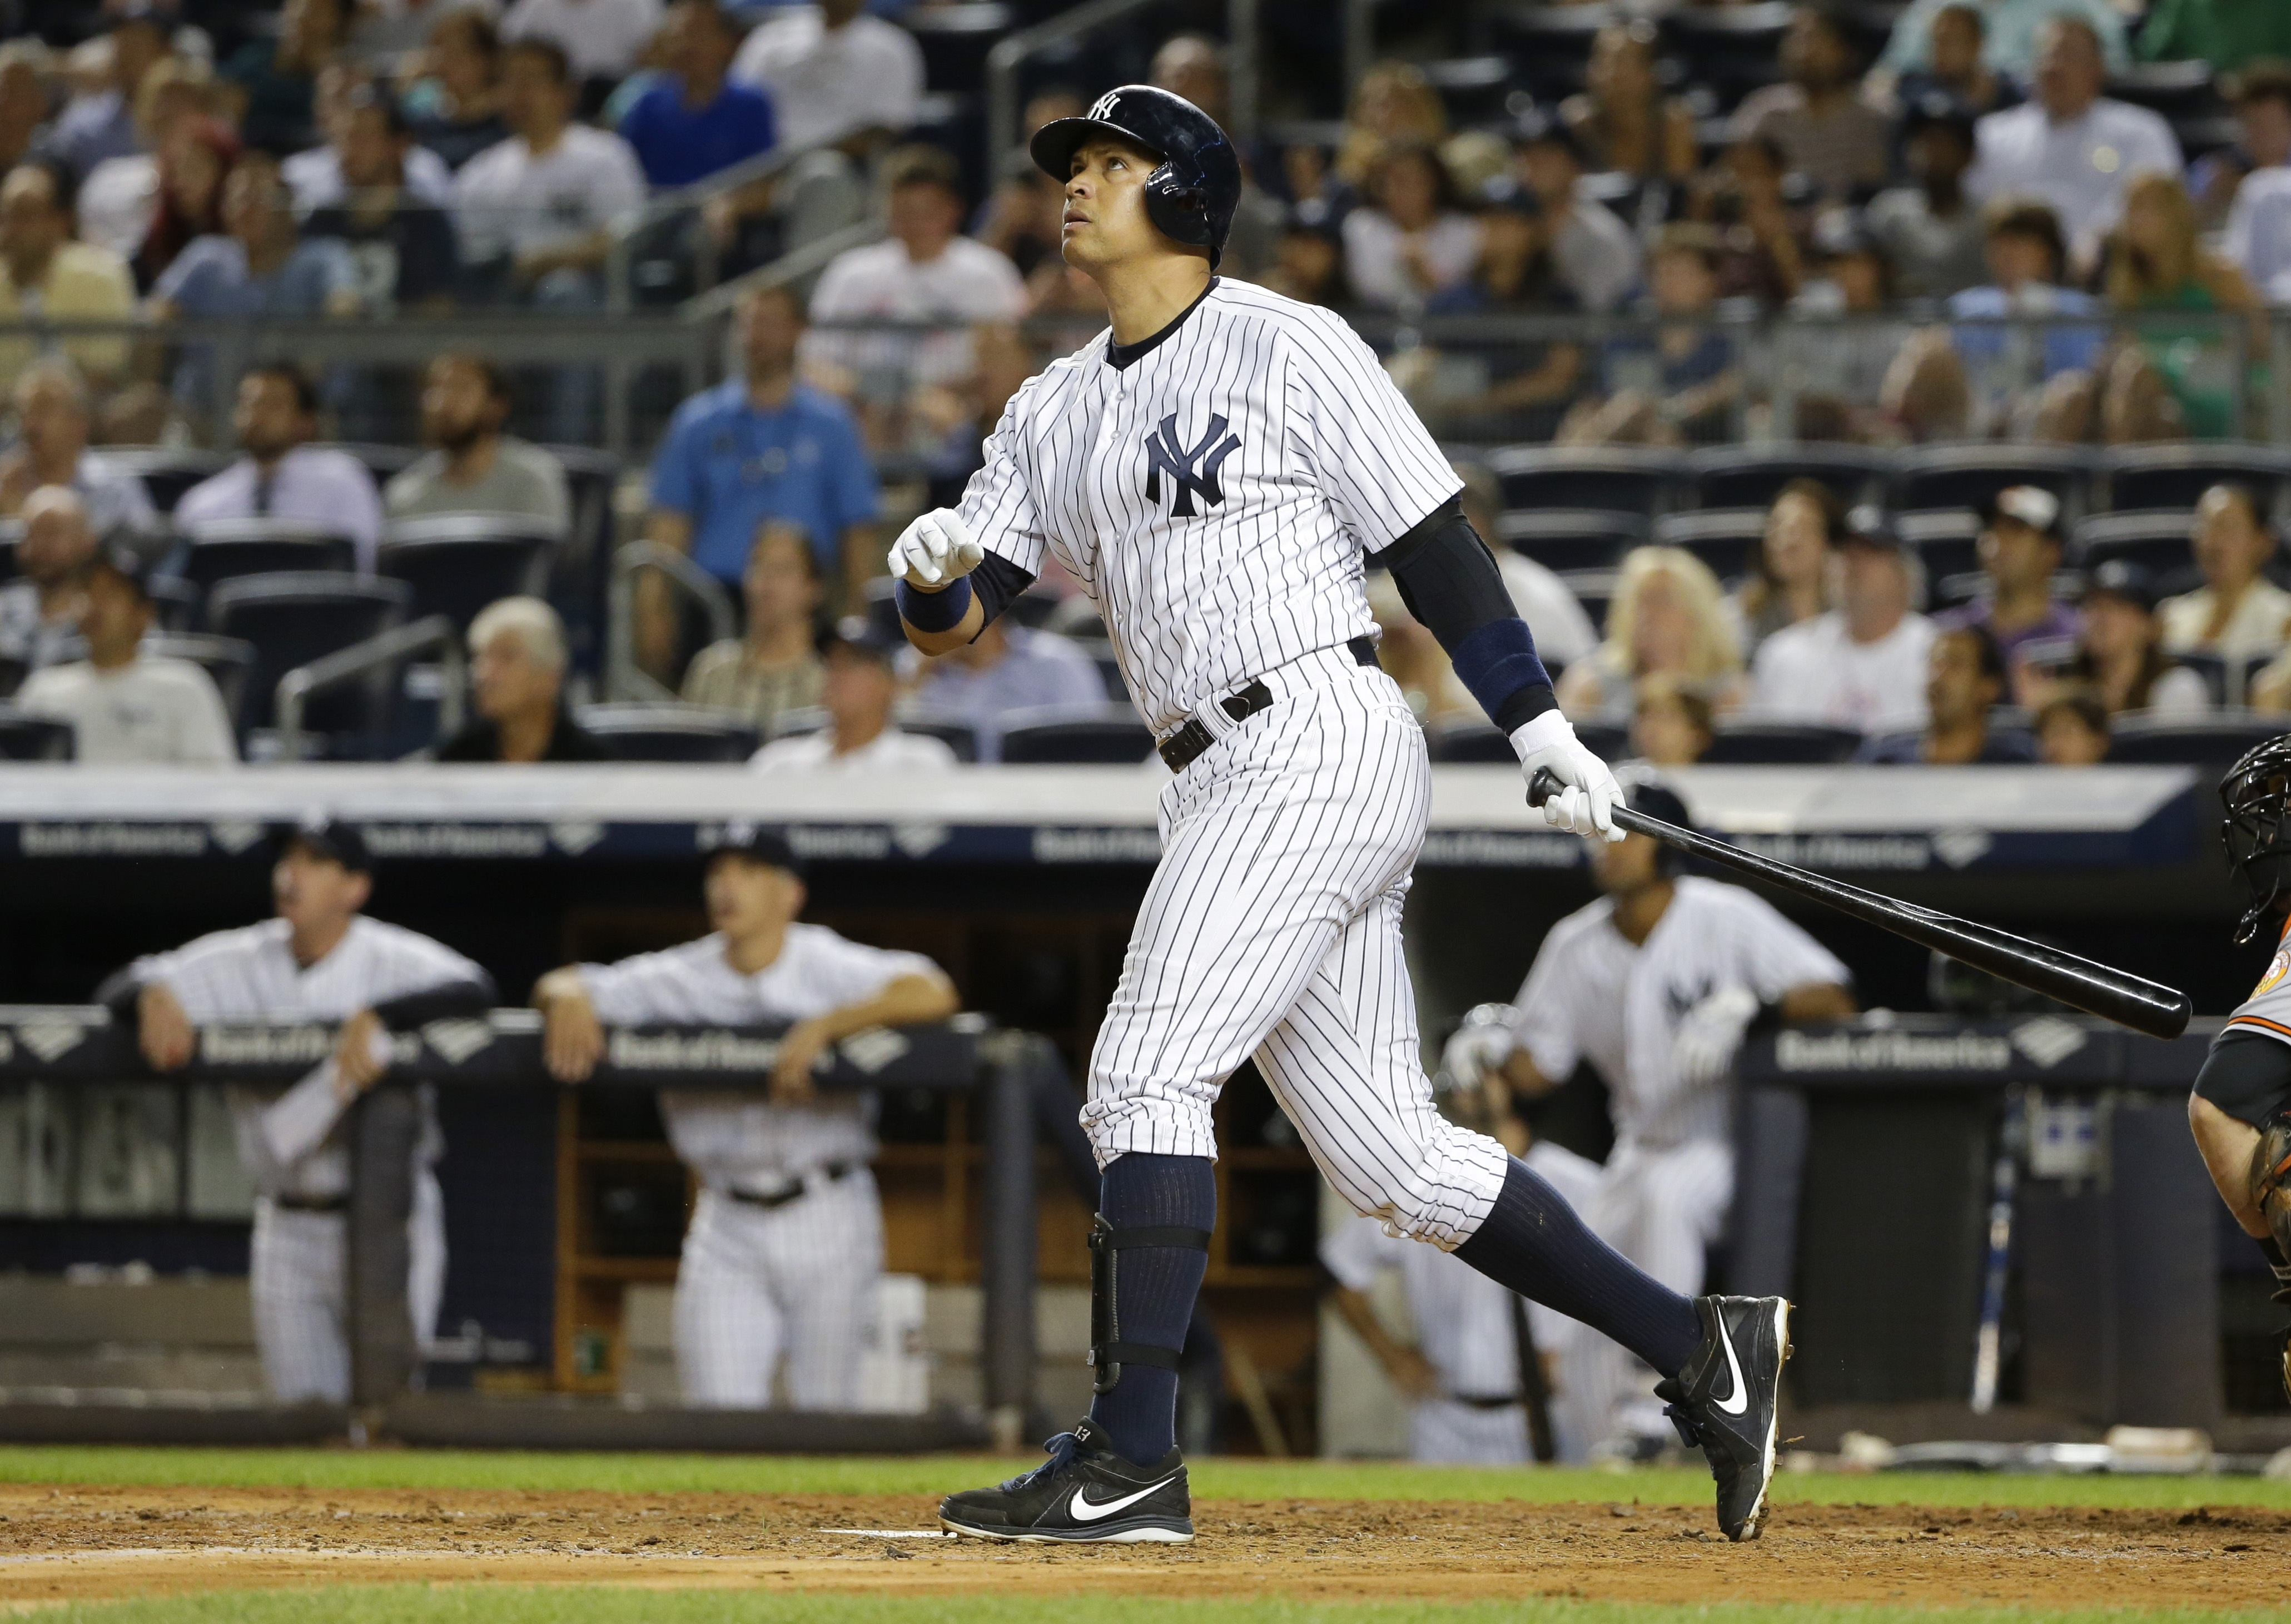 New York Yankees' Alex Rodriguez watches his home run during the sixth inning of a baseball game against the Baltimore Orioles on Tuesday, Sept. 8, 2015, in New York. (AP Photo/Frank Franklin II)